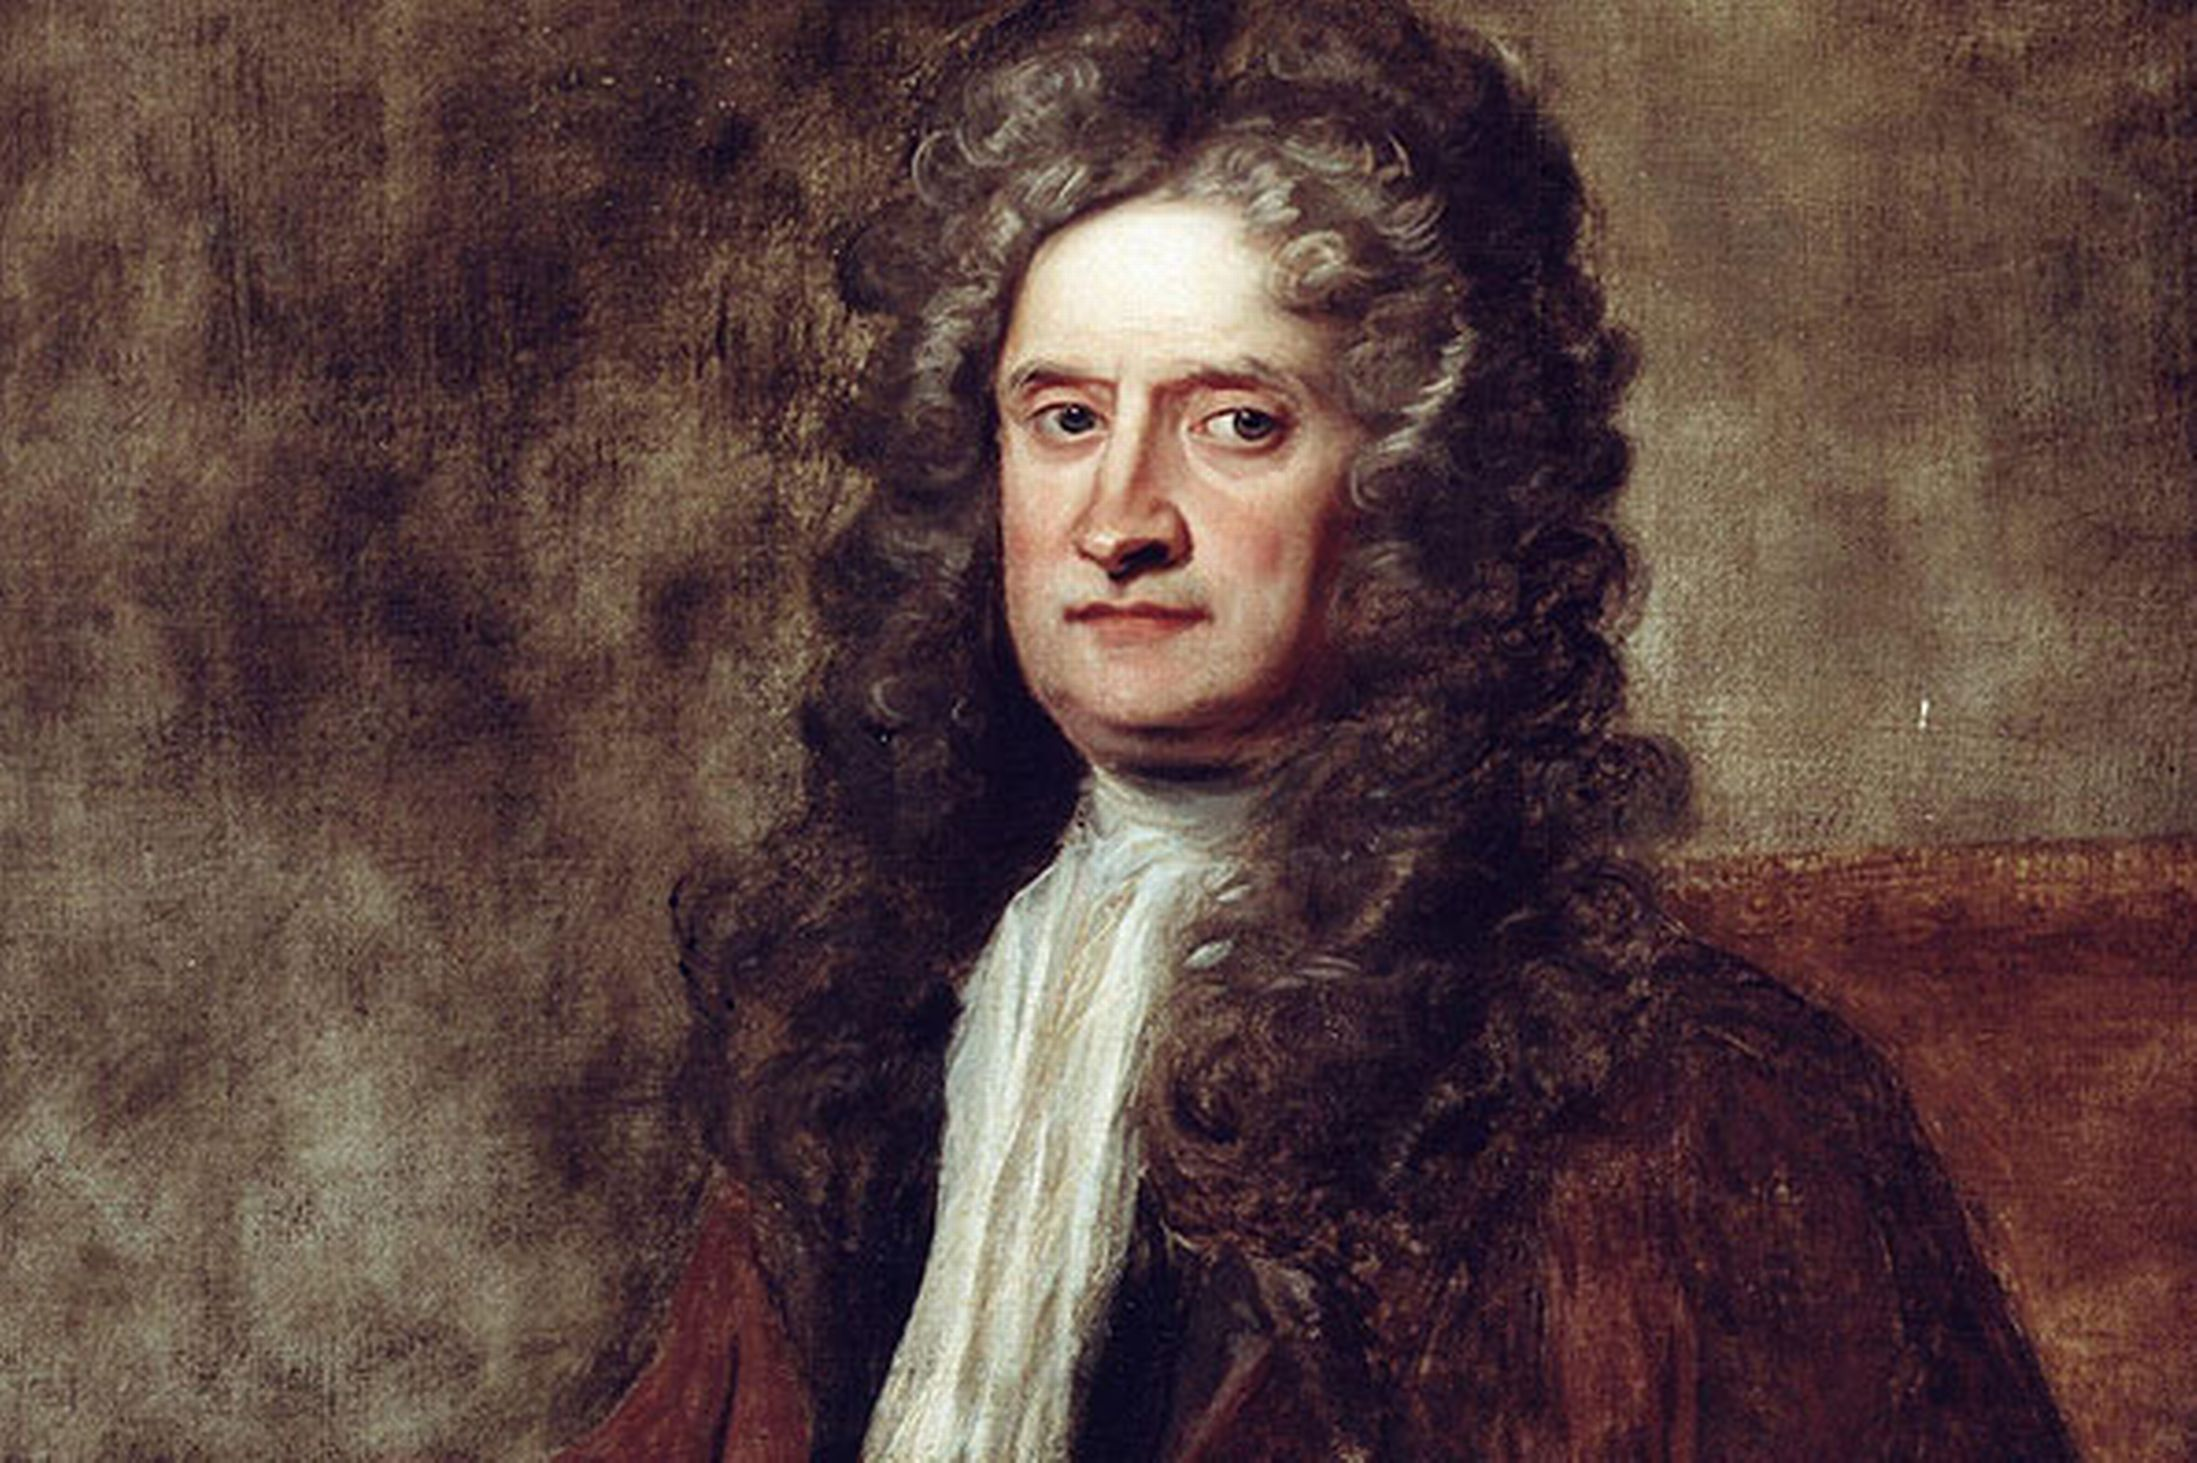 sir_isaac_newton_history_of_europe